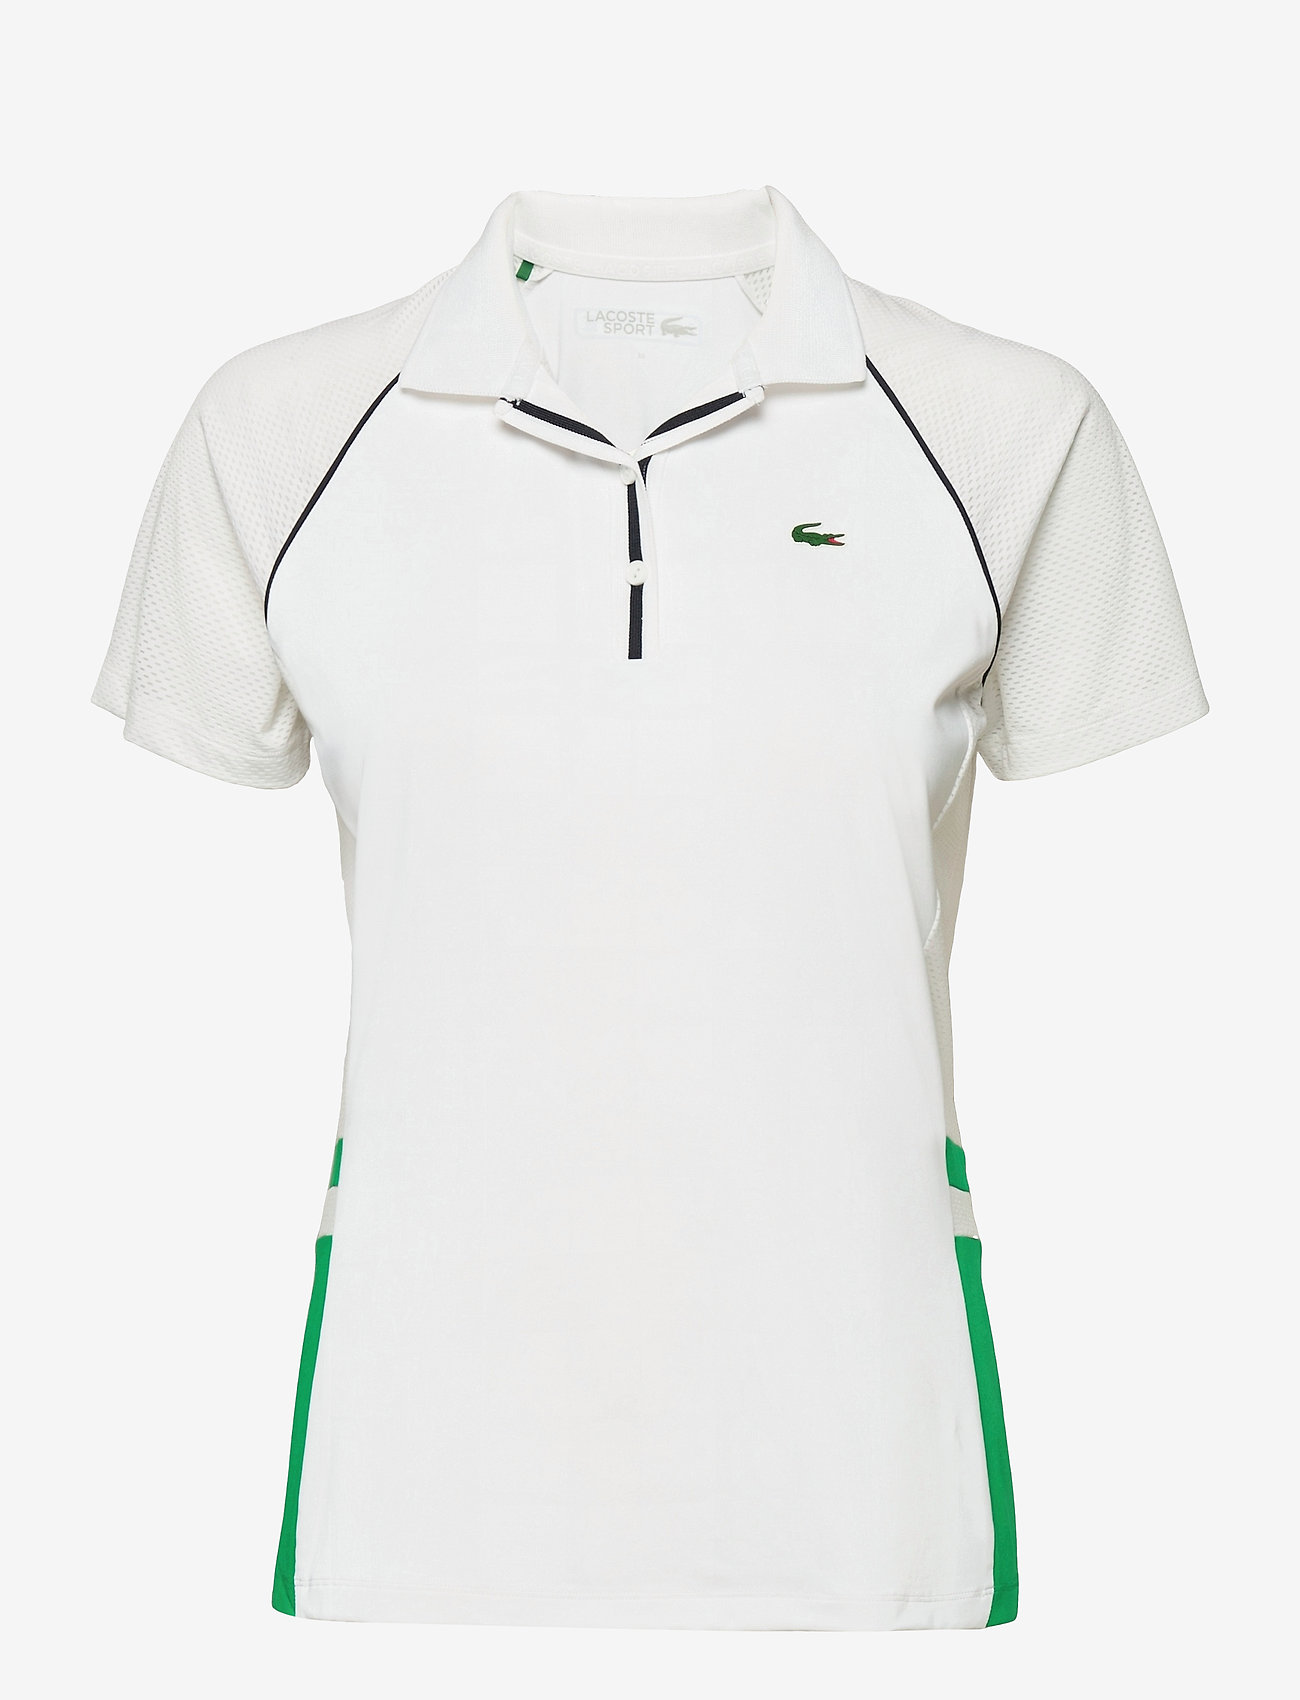 Lacoste - Women s S/S polo - polo's - white/palm green-navy blue - 0